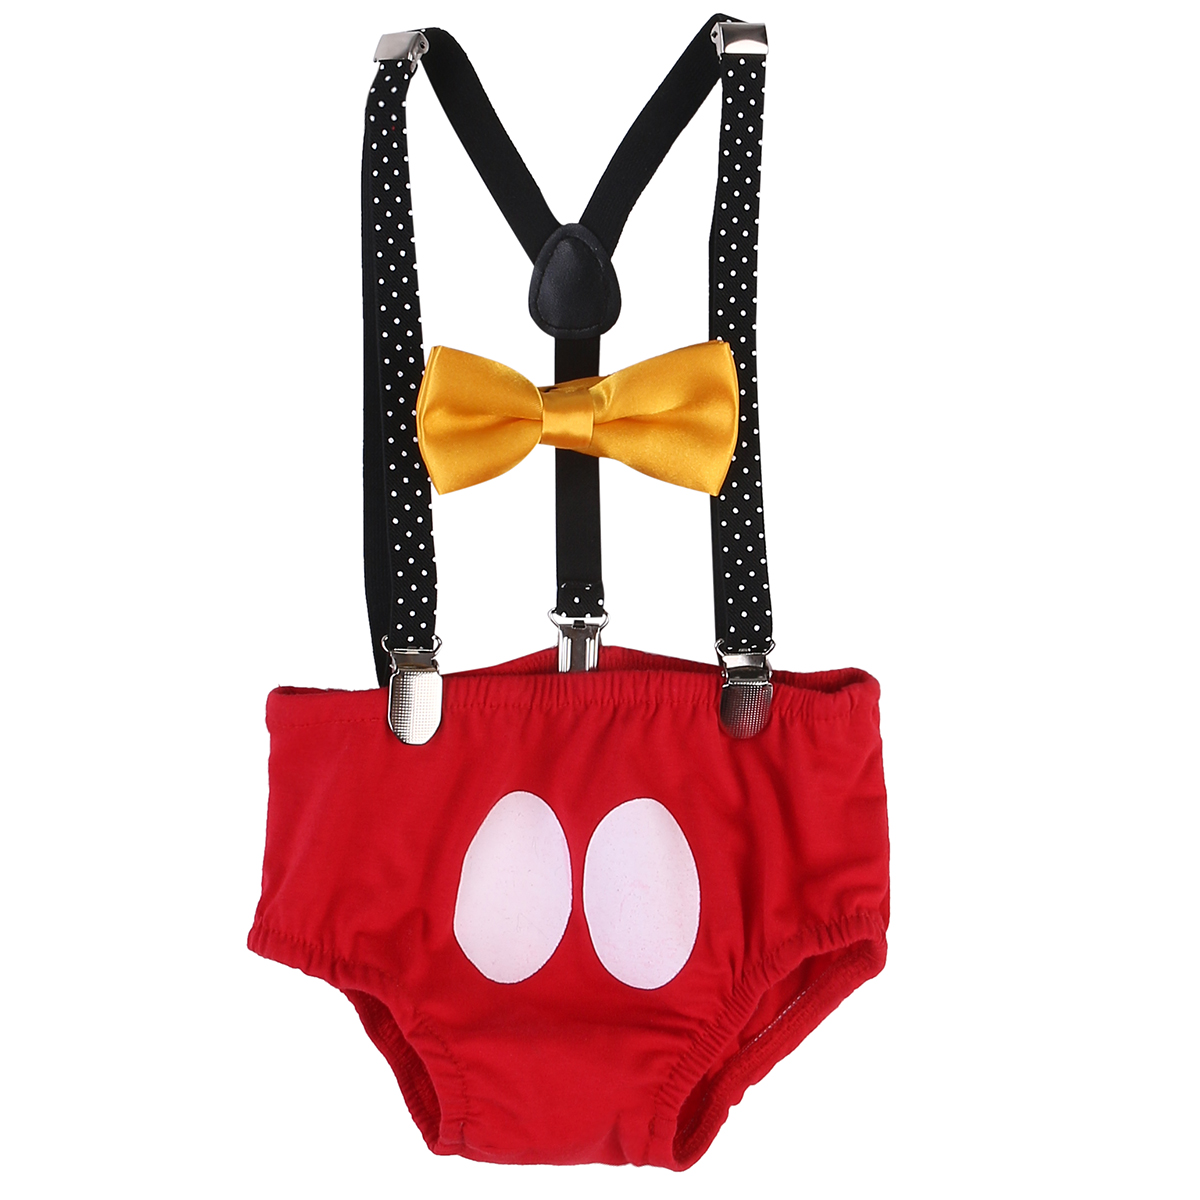 0-18M Newborn Cute Casual Infant Baby Girls Boys Overalls Romper Bowknot Cartoon Print Costume Newly Xmas Pretty For Kids